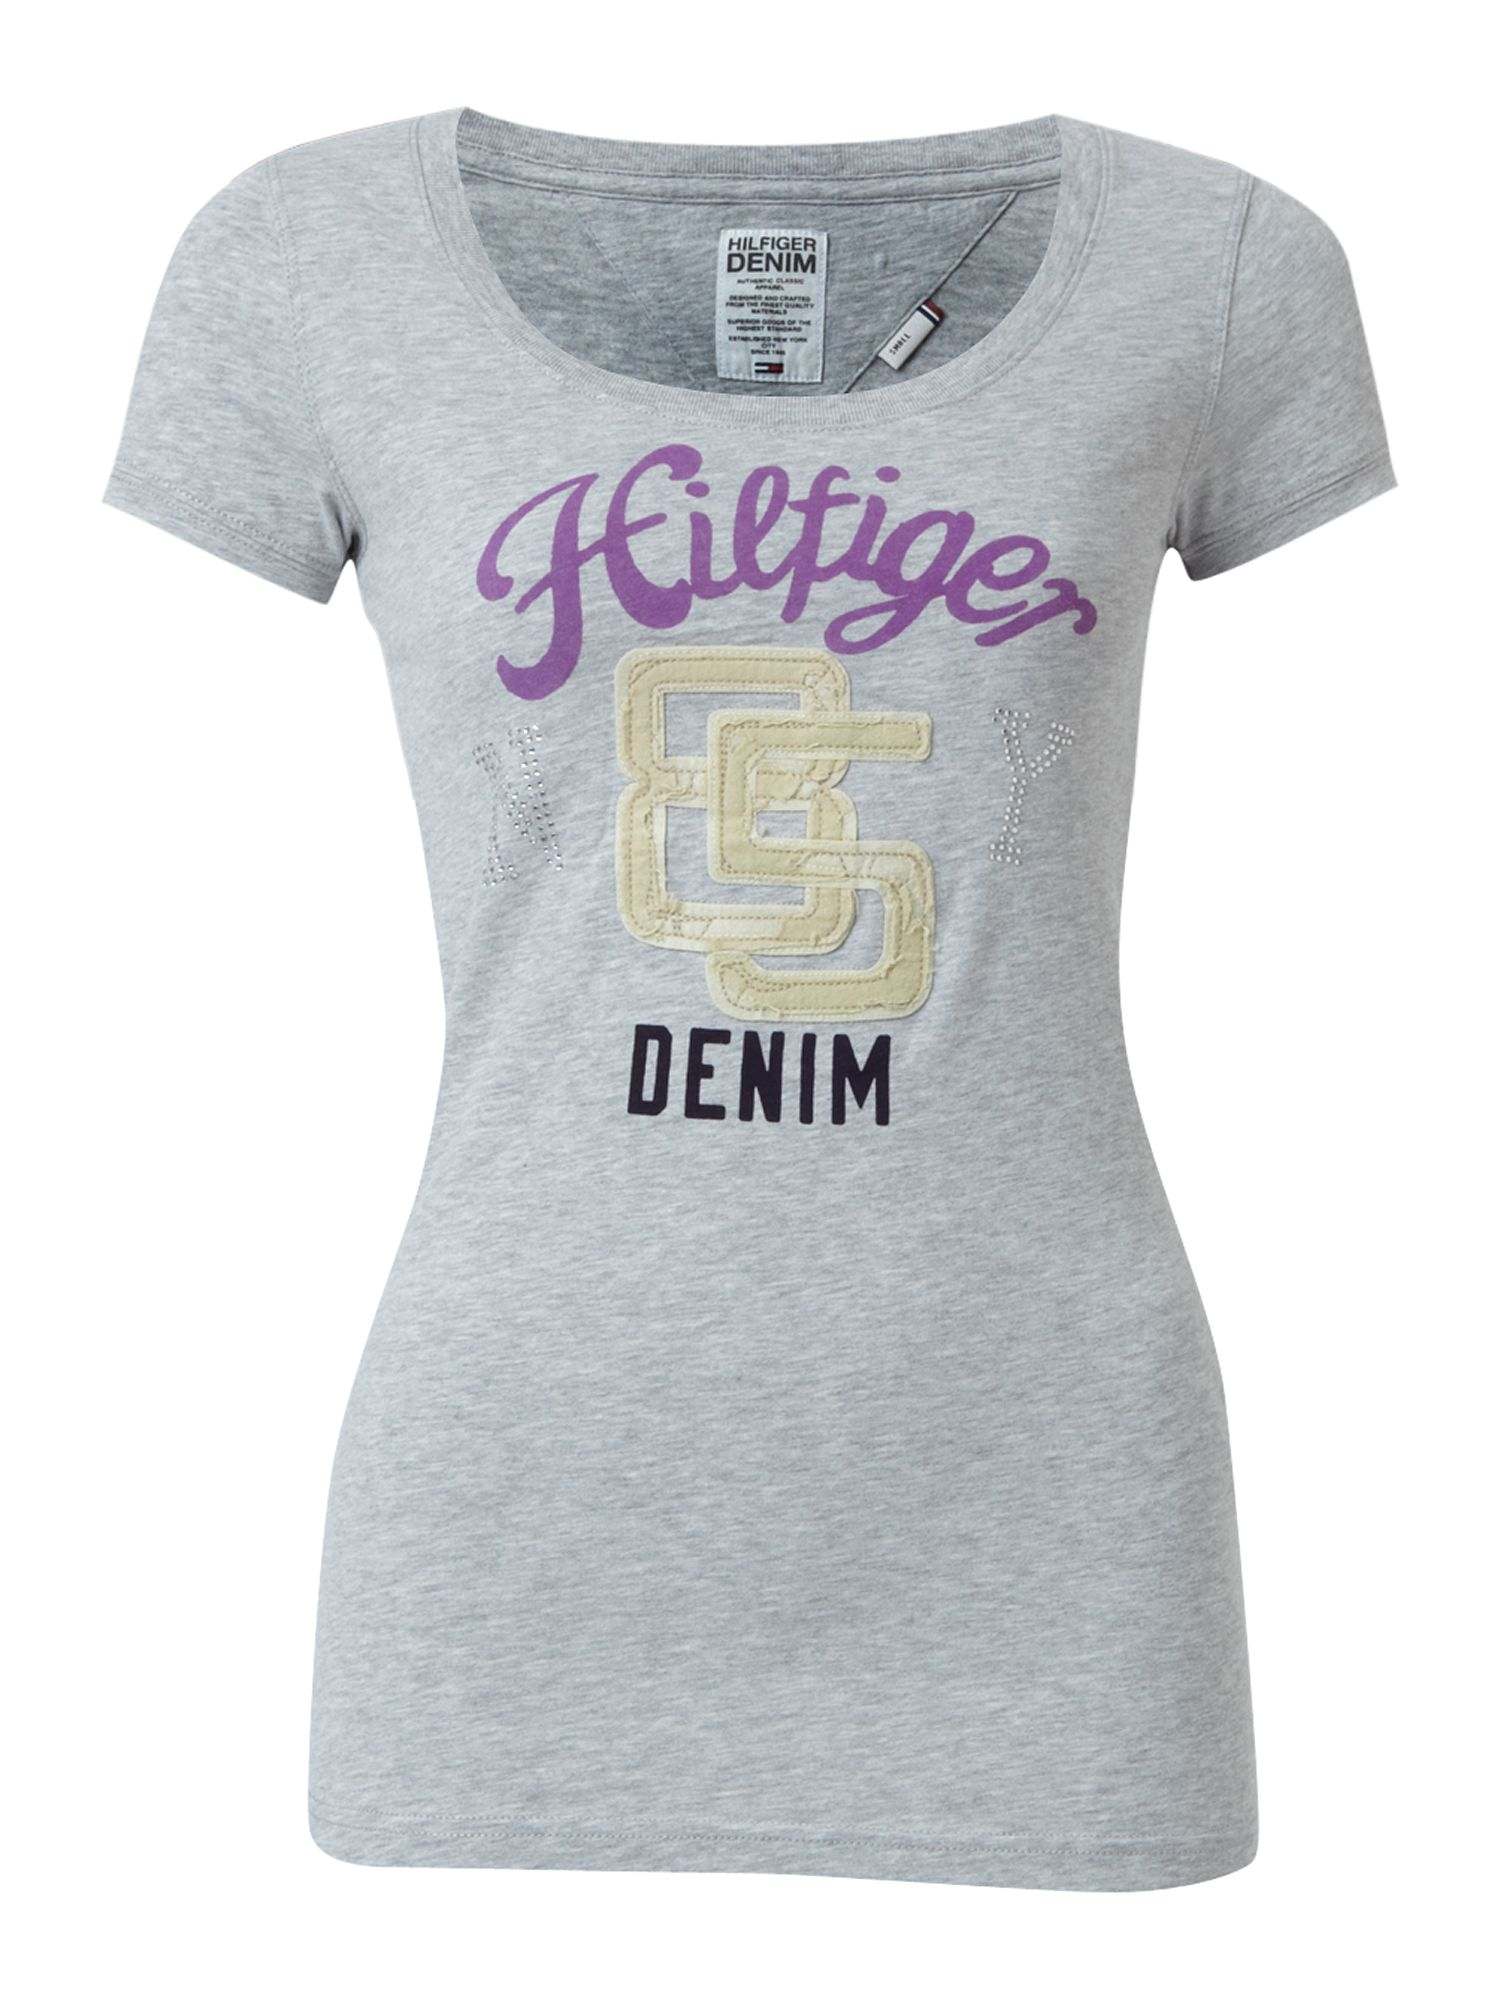 Tommy Hilfiger Lexie cotton t-shirt Grey product image